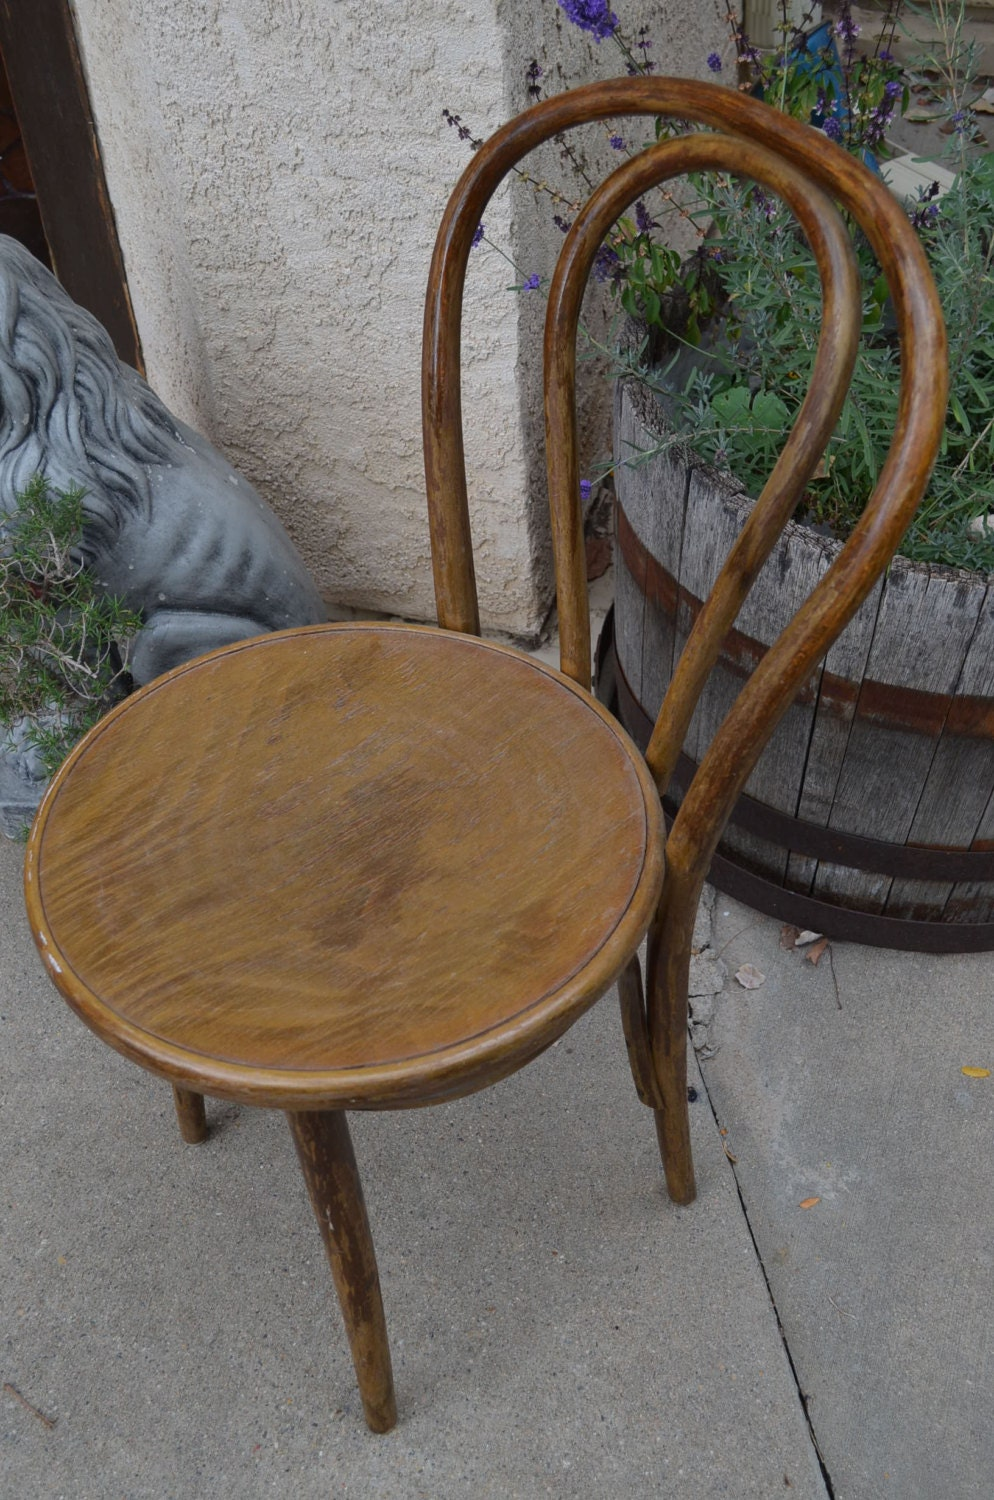 Antique thonet bentwood chair - Like This Item